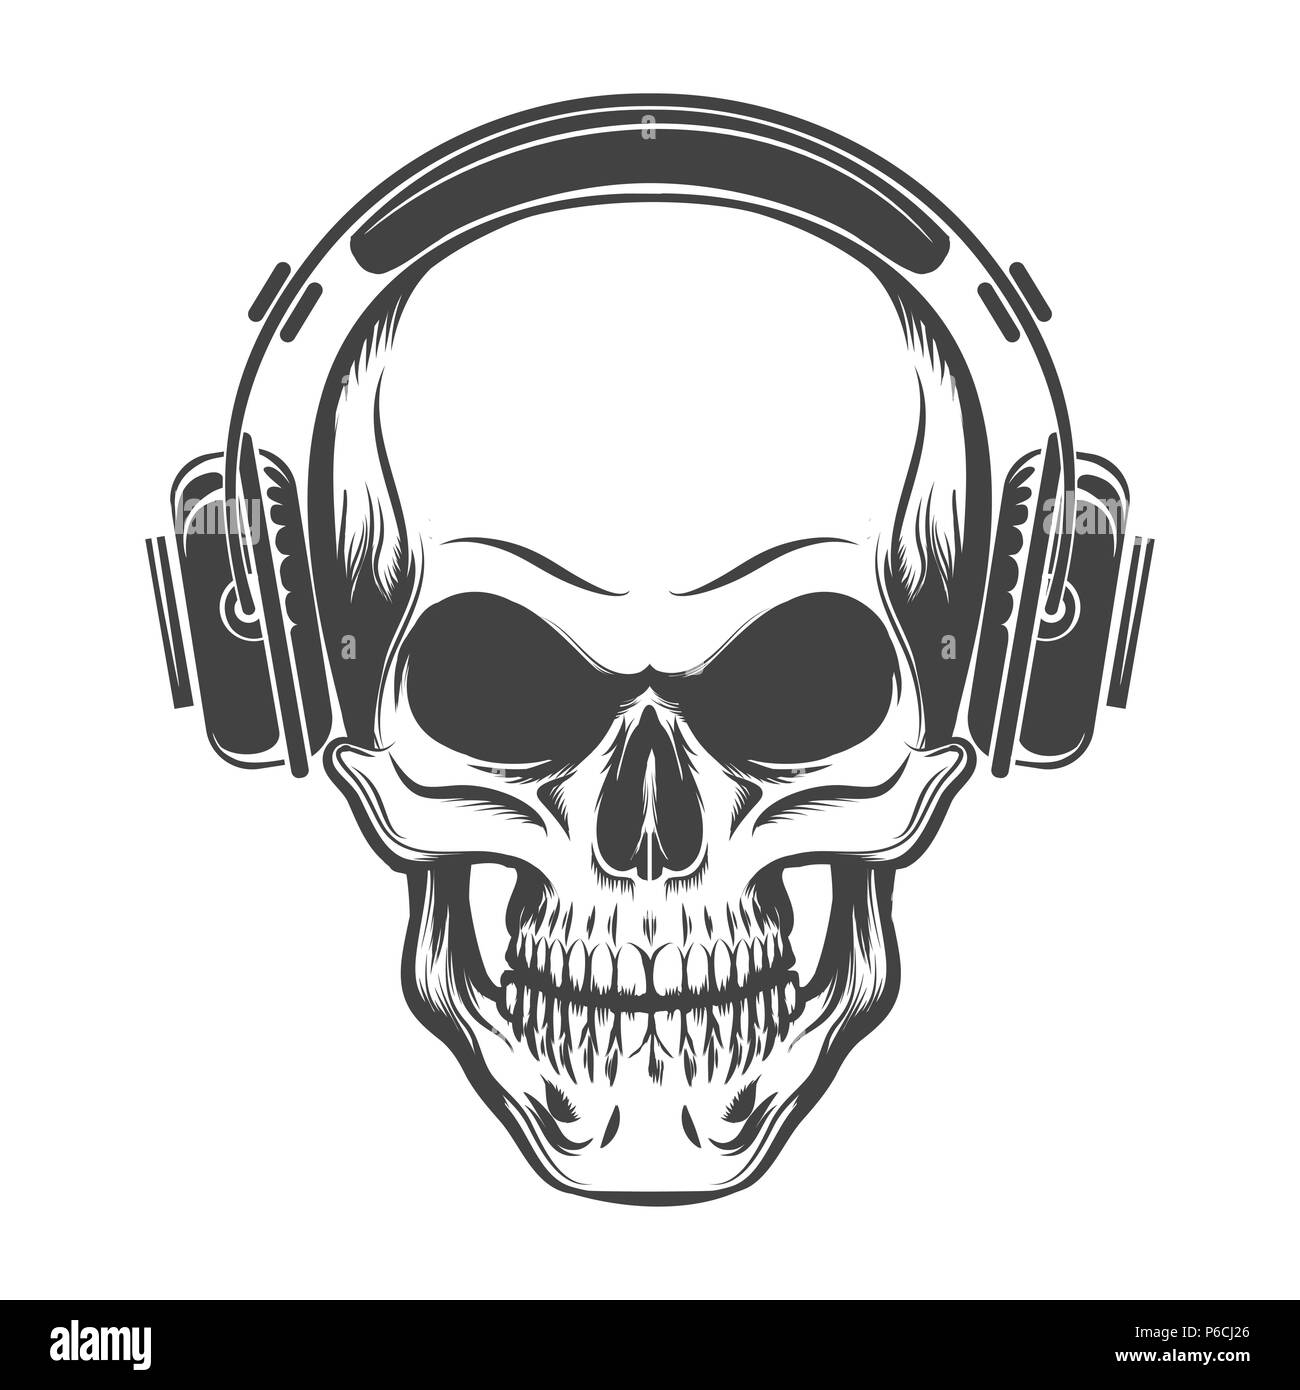 Skeleton Headphones High Resolution Stock Photography And Images Alamy